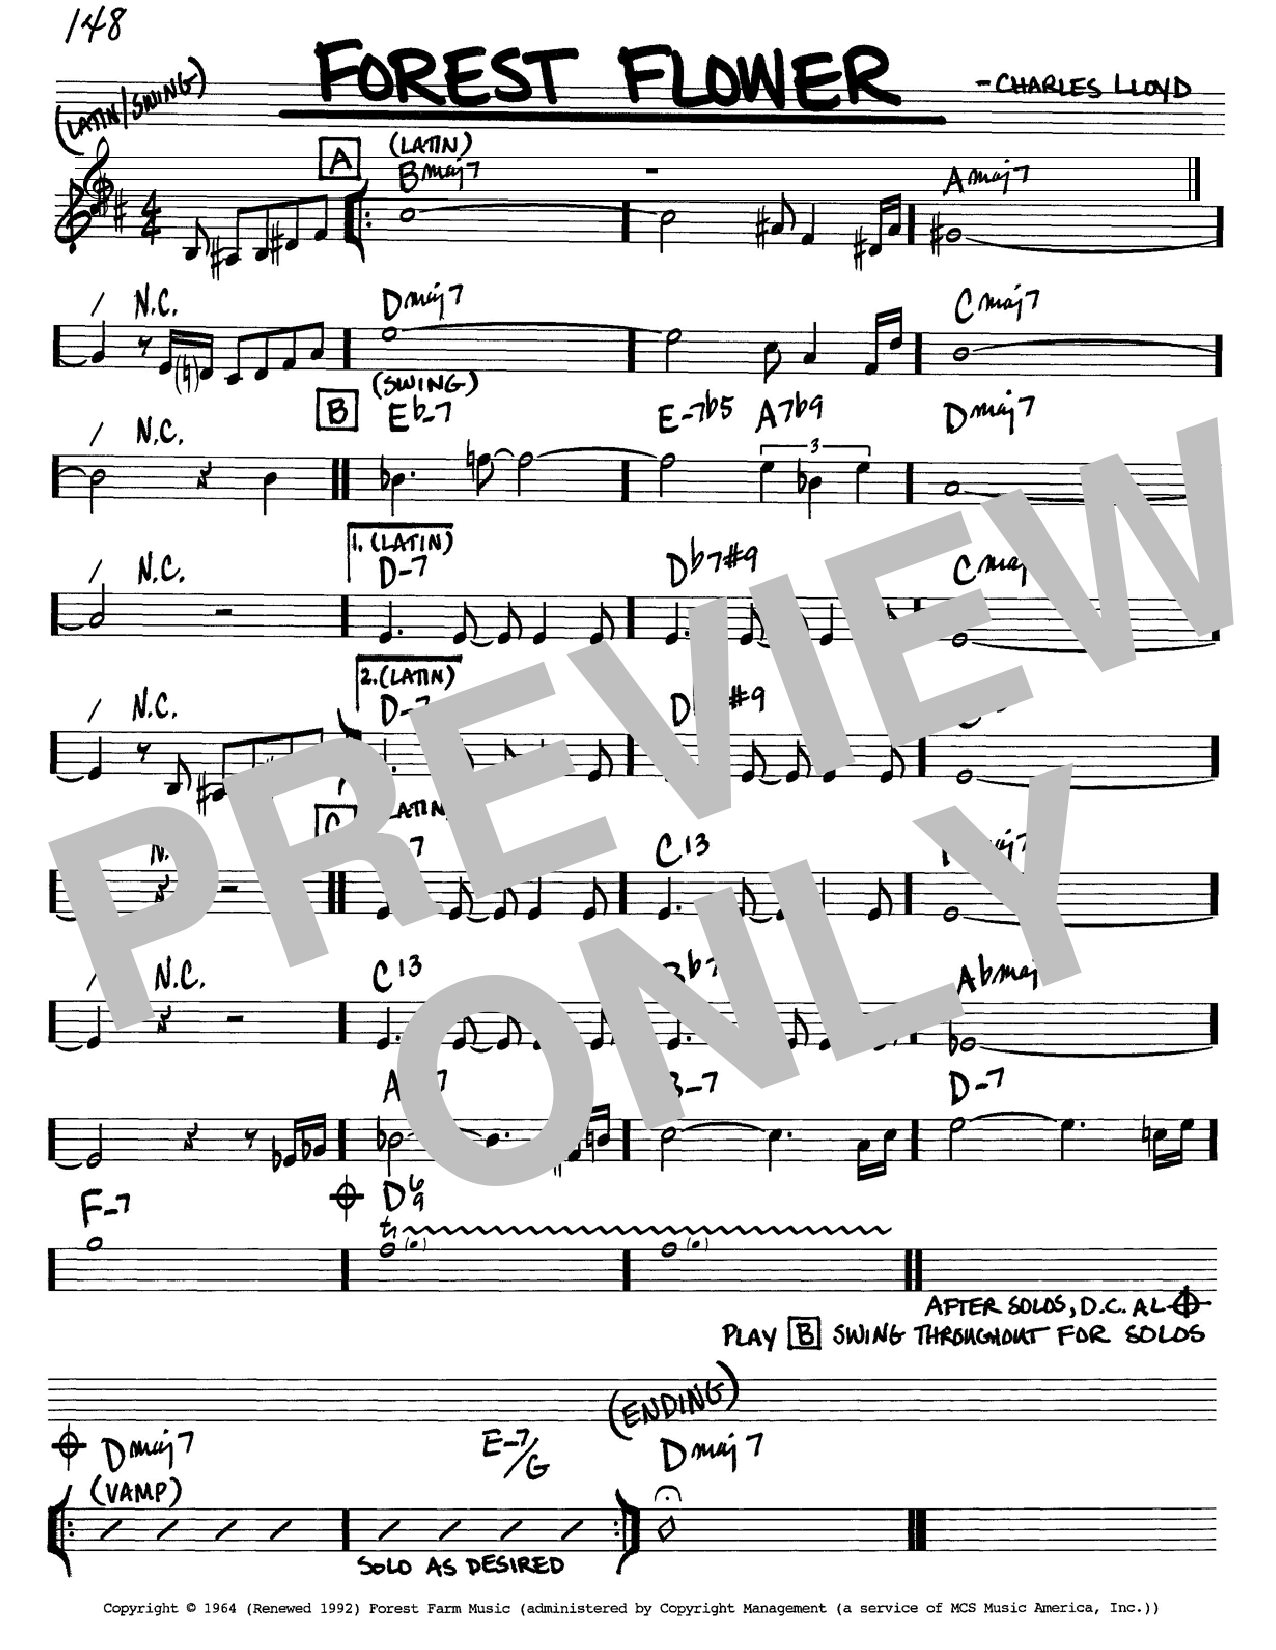 Charles Lloyd Forest Flower sheet music notes and chords. Download Printable PDF.